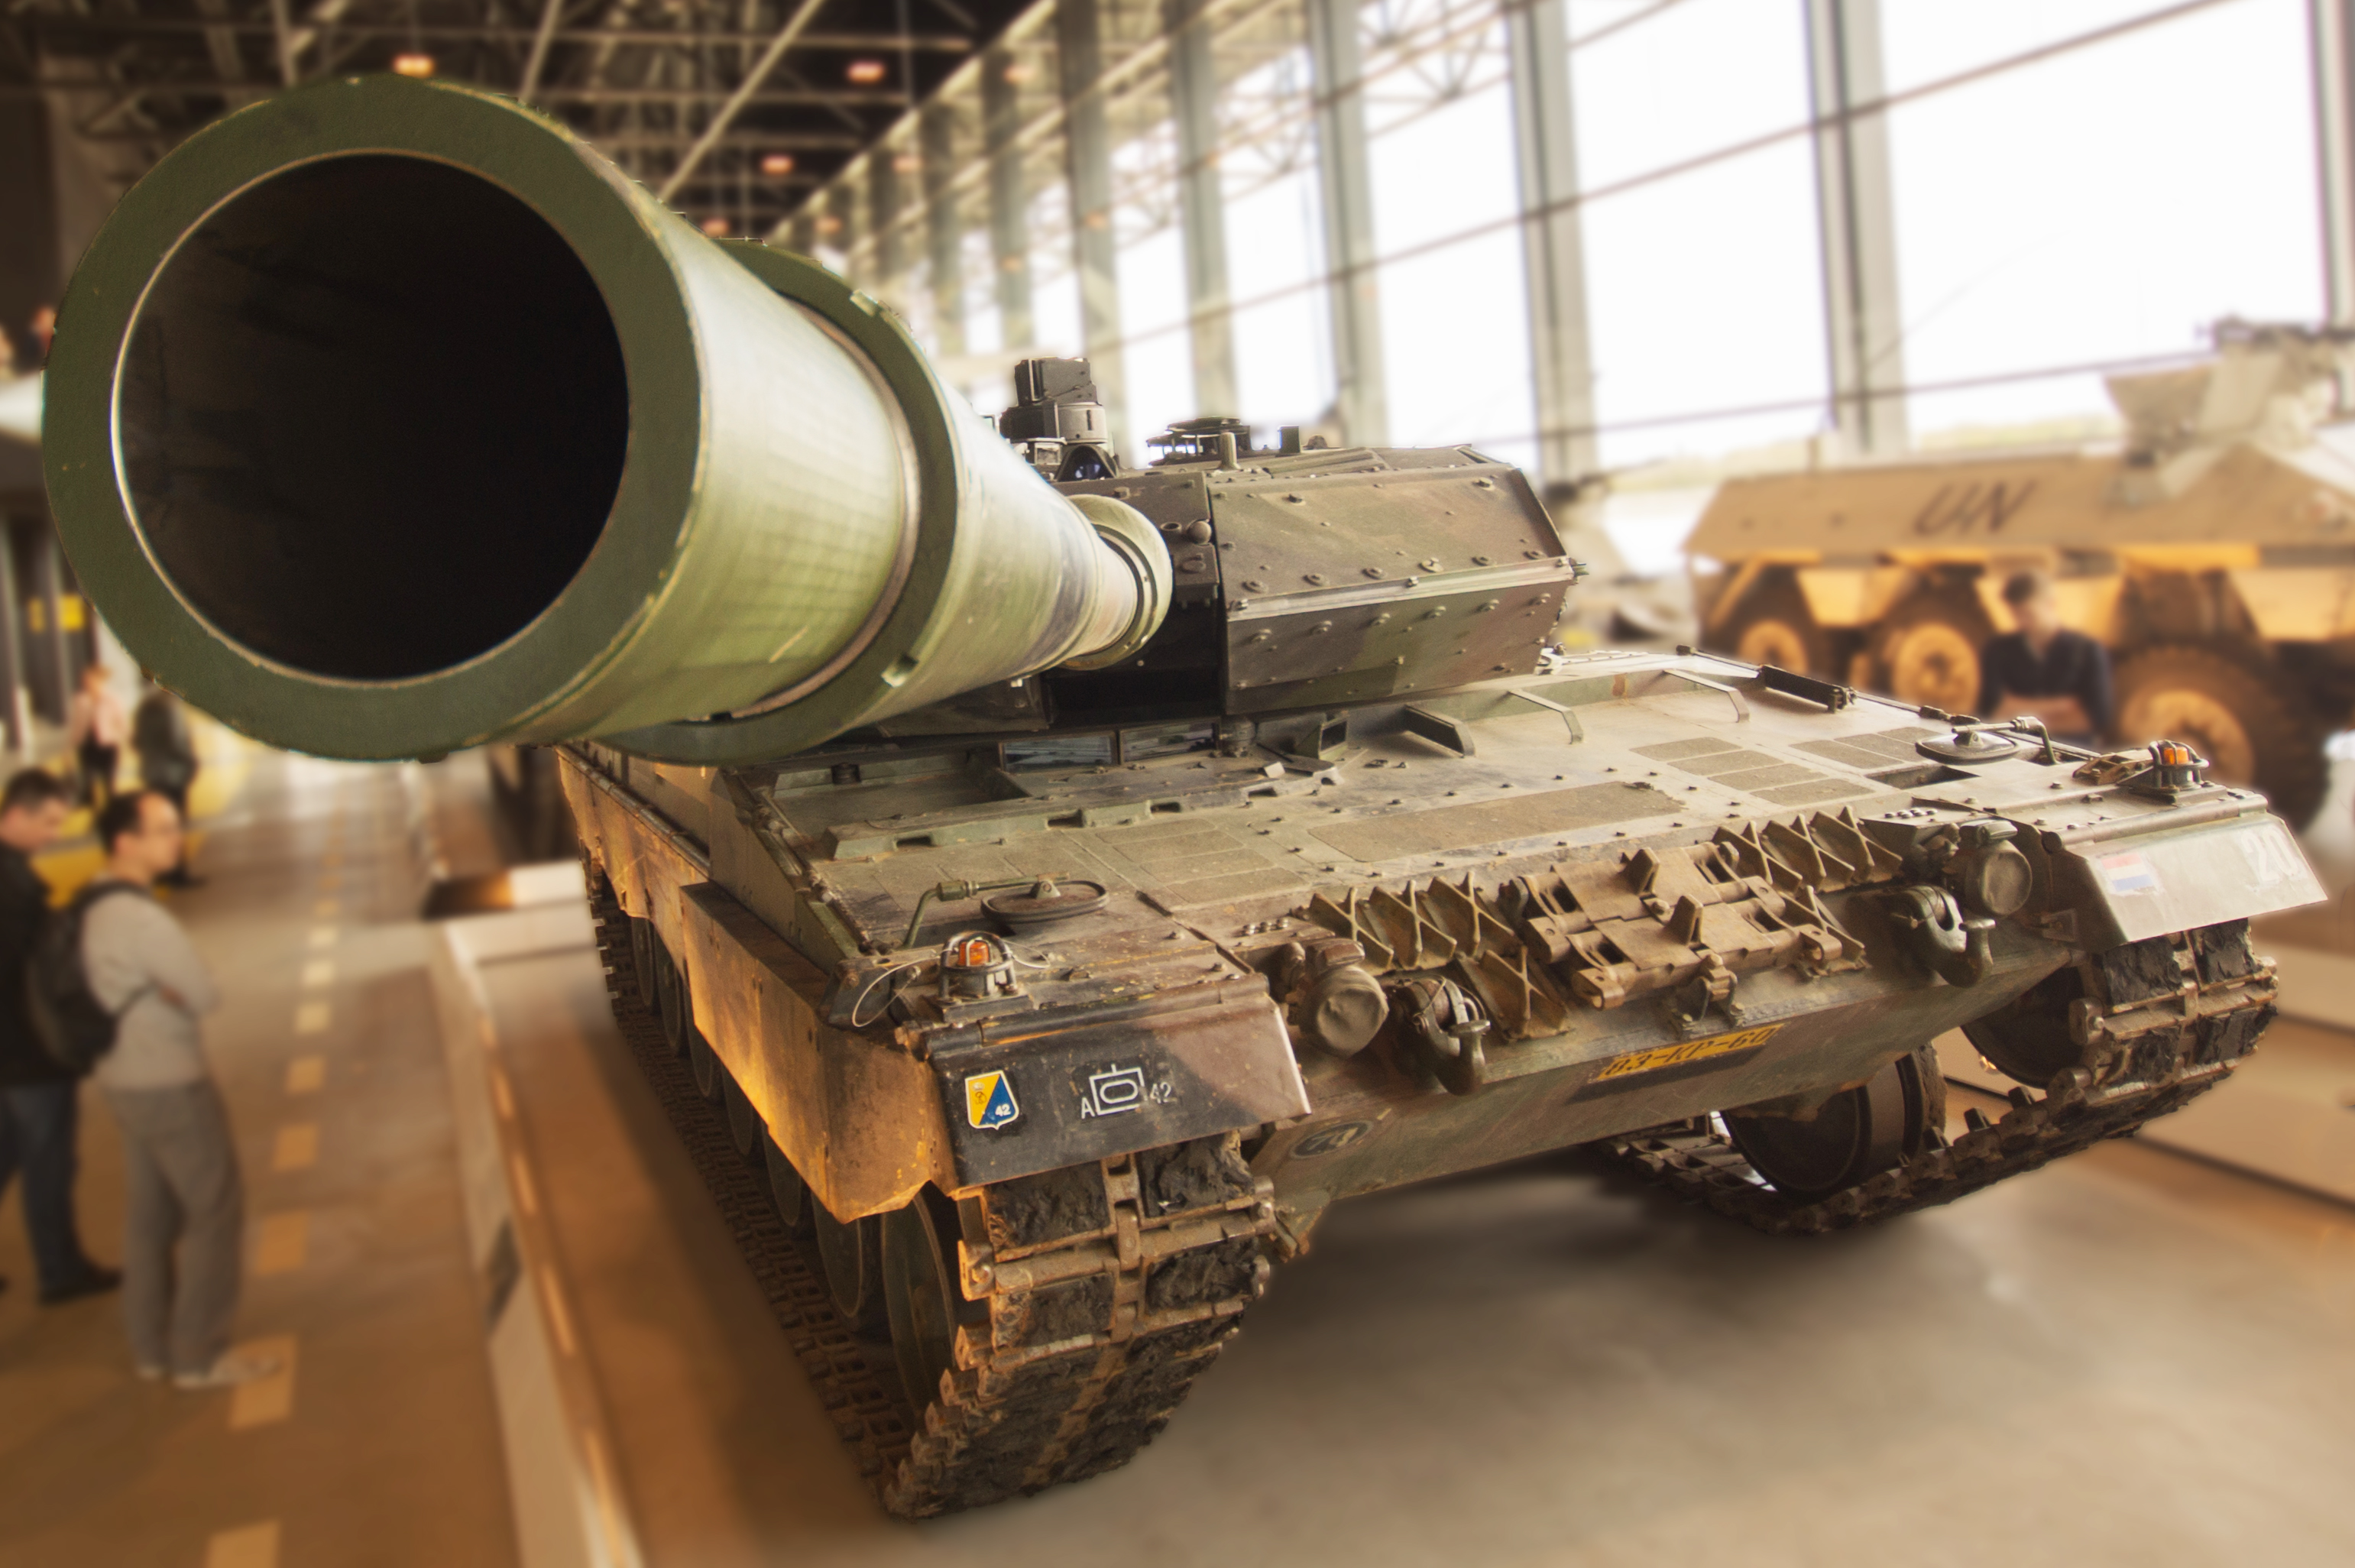 The top 3 must-visit military museums in the world